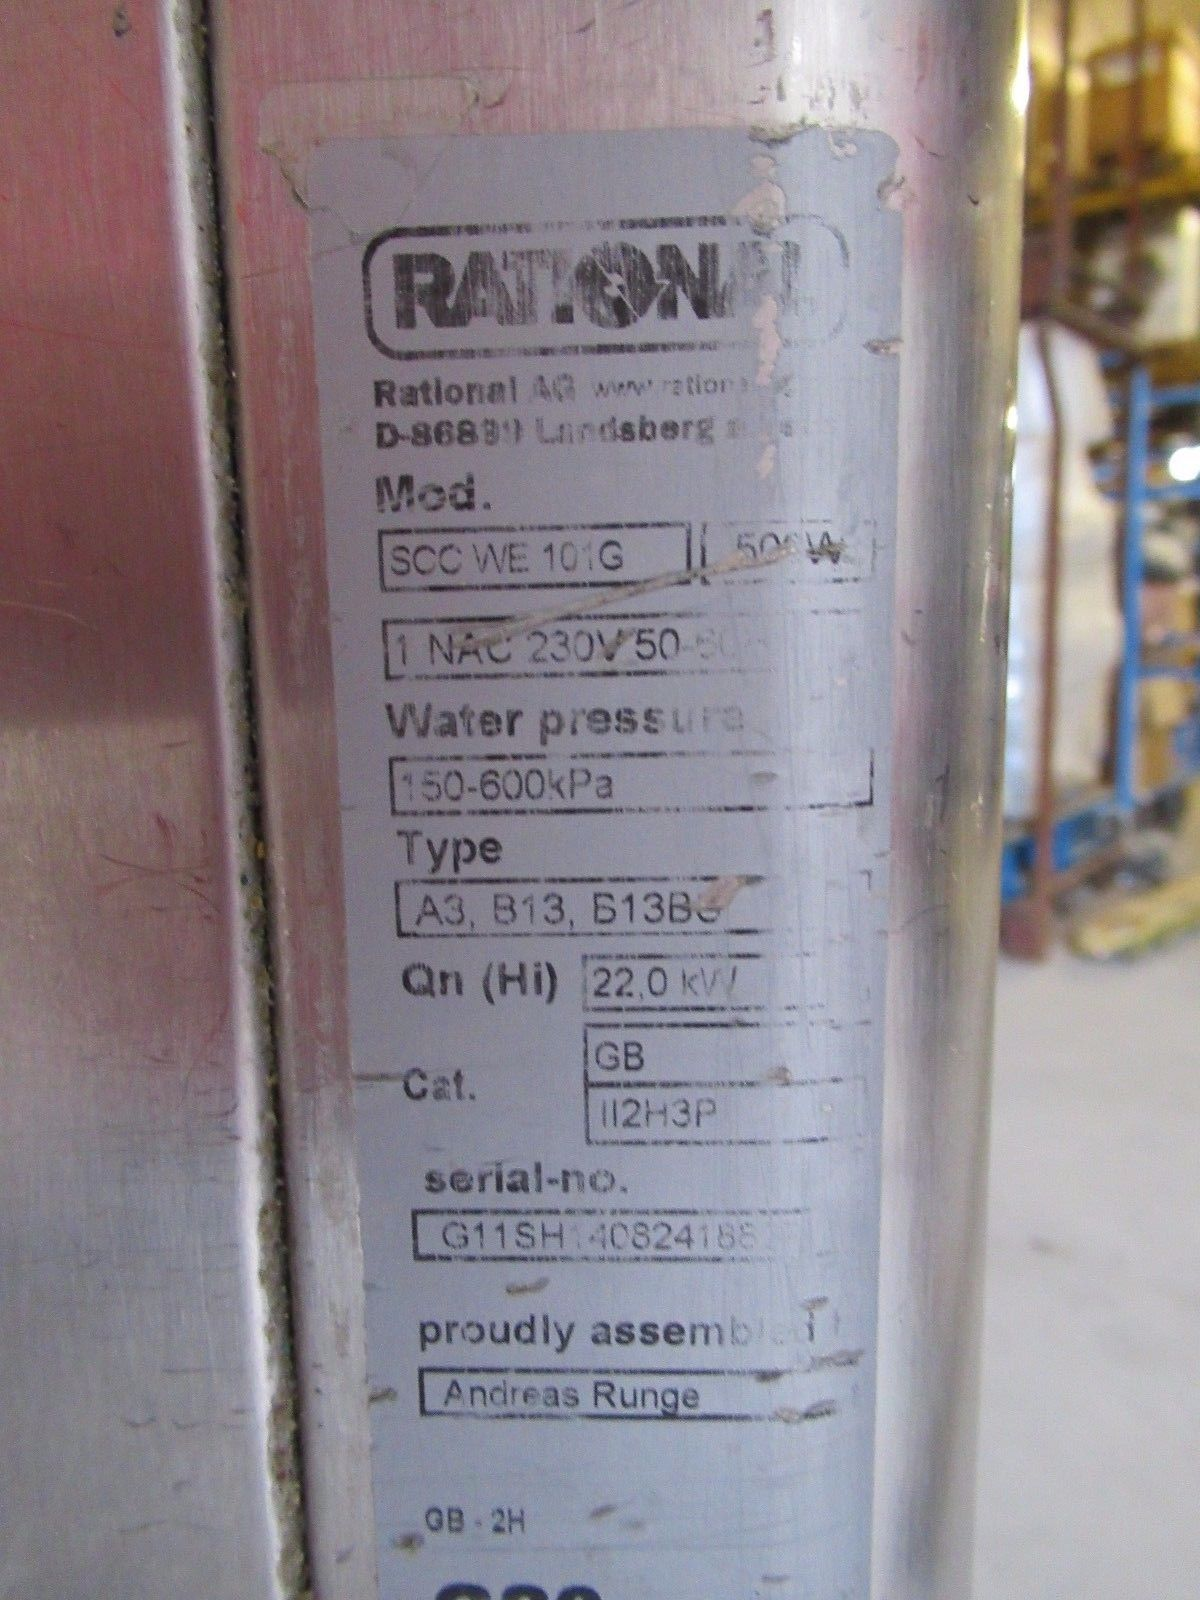 rational white efficiency scc we 101g combi commercial oven gas 10 grid [3] 19560 p rational combi oven service manual 100 images rational cm 201 rational cm101 wiring diagram at reclaimingppi.co